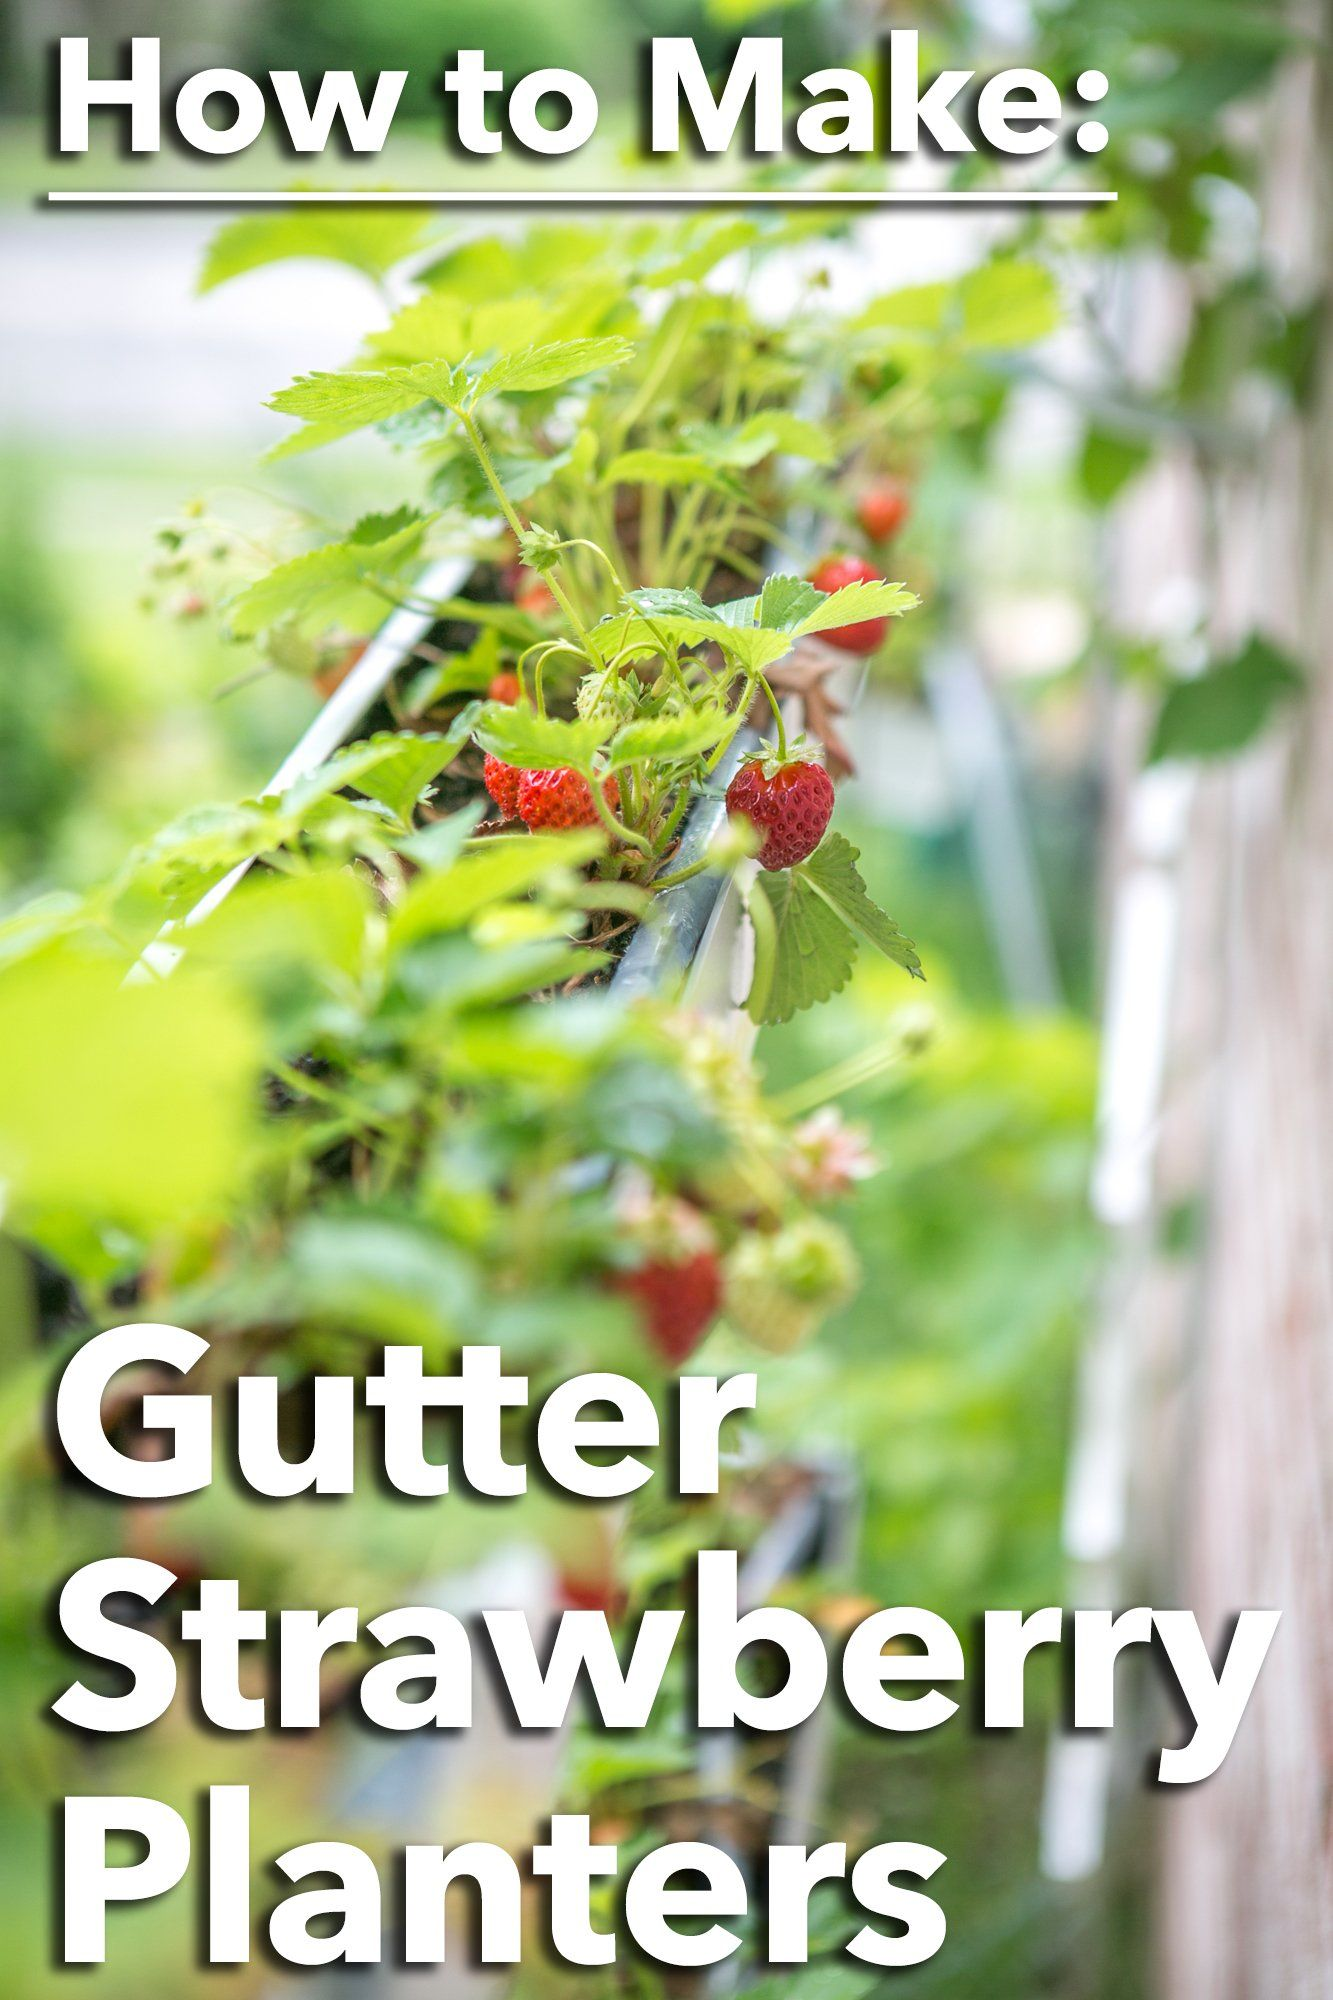 How to make Gutter Planters for Strawberries - Primal Palate | Paleo Recipes